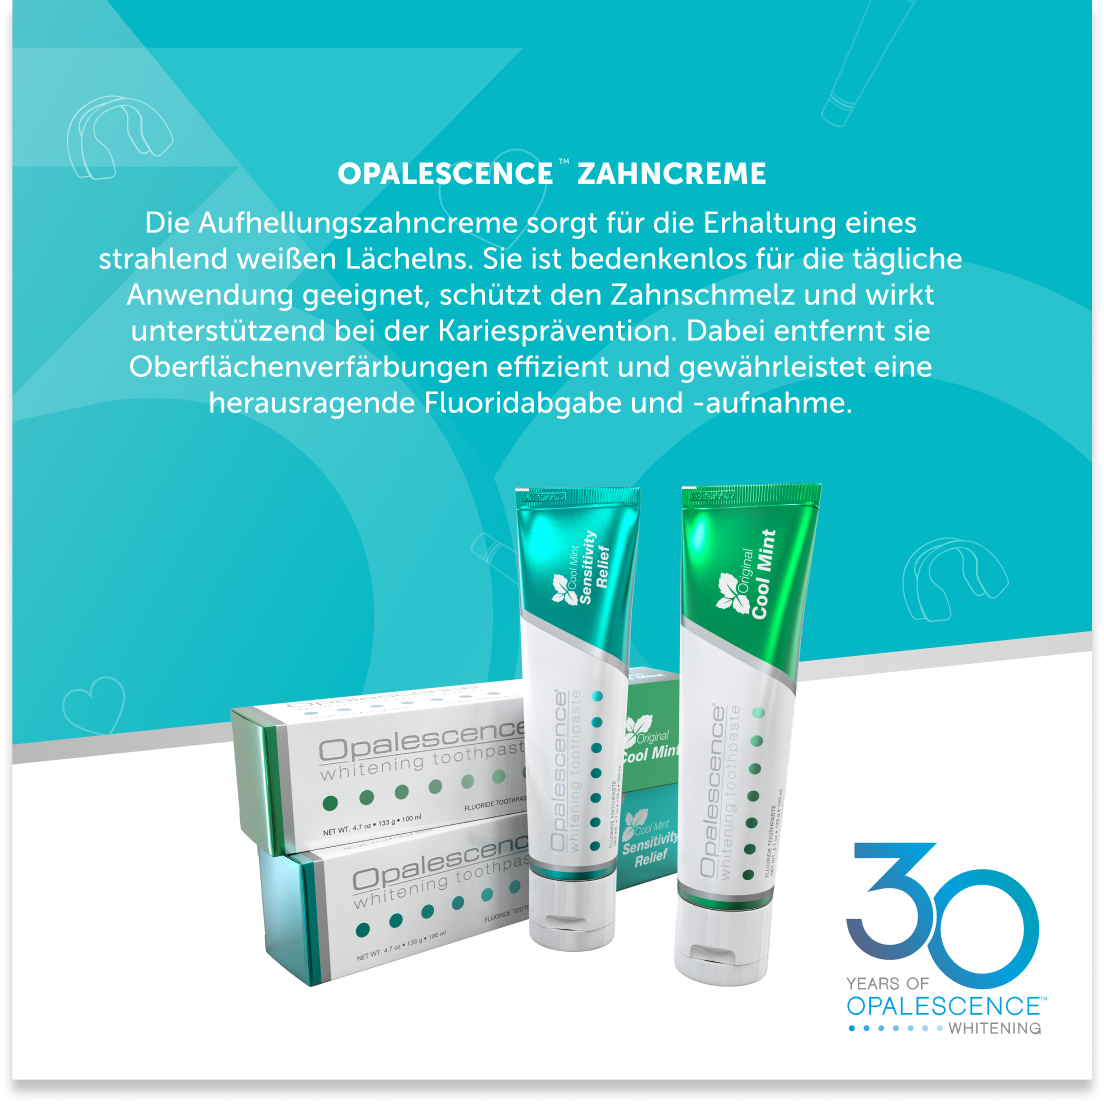 DE_Opalescence-Birthday-Downloadable-Opalescence-Toothpaste